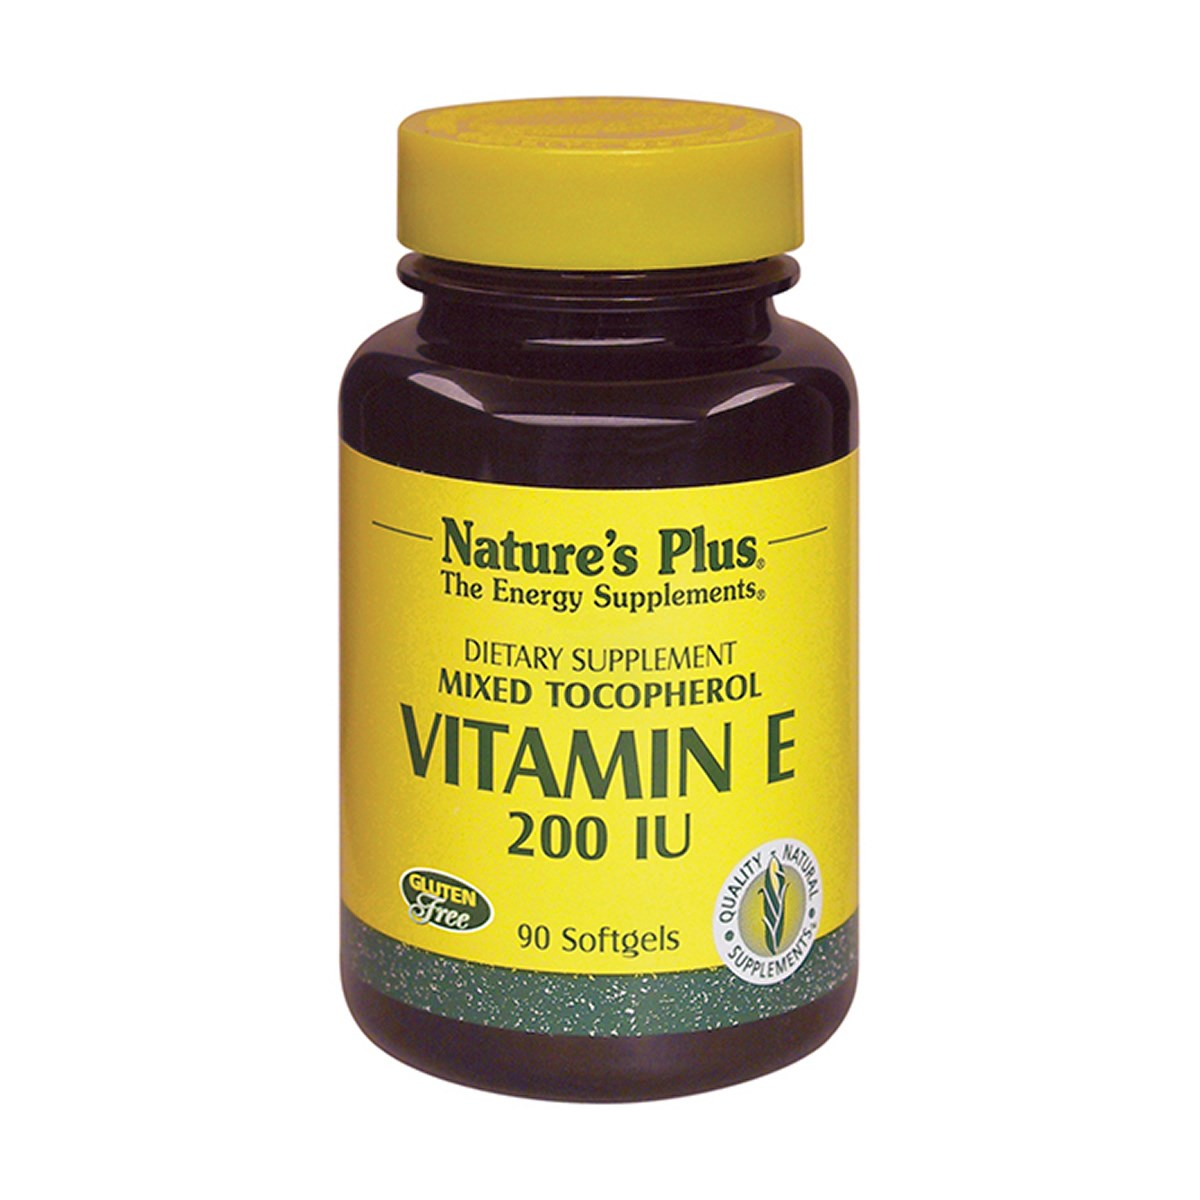 Natures Plus Vitamin E 200 IU Mixed Tocopherol Softgels